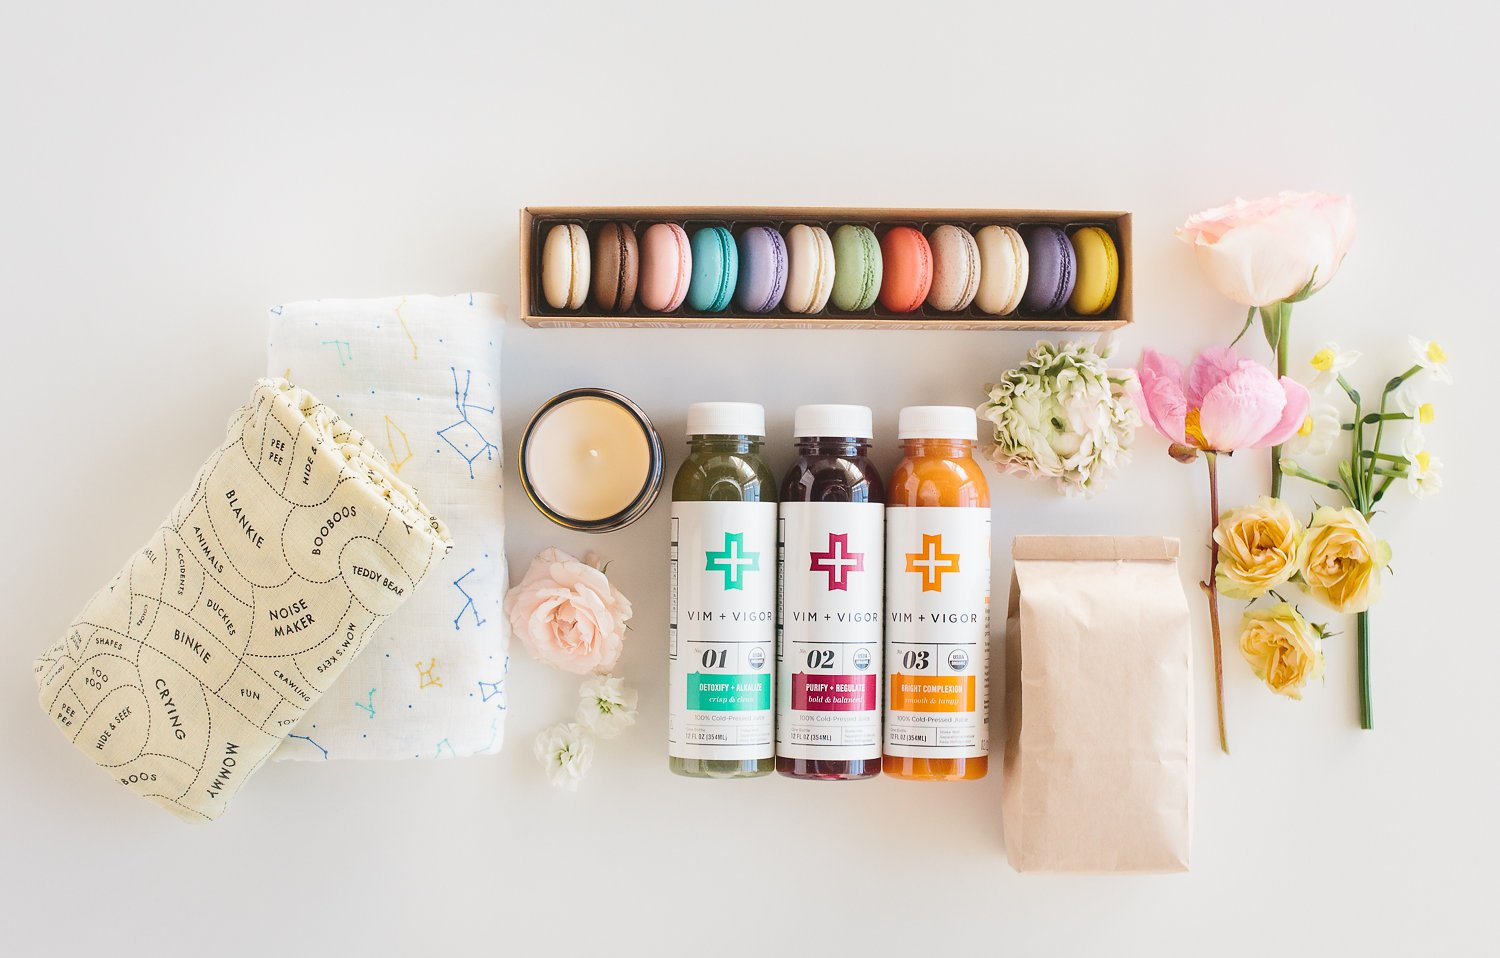 aprylann_buttermilk_giftbaskets_102 & Which Dallas-Based Curated Gift Box Service Is for You? - D Magazine